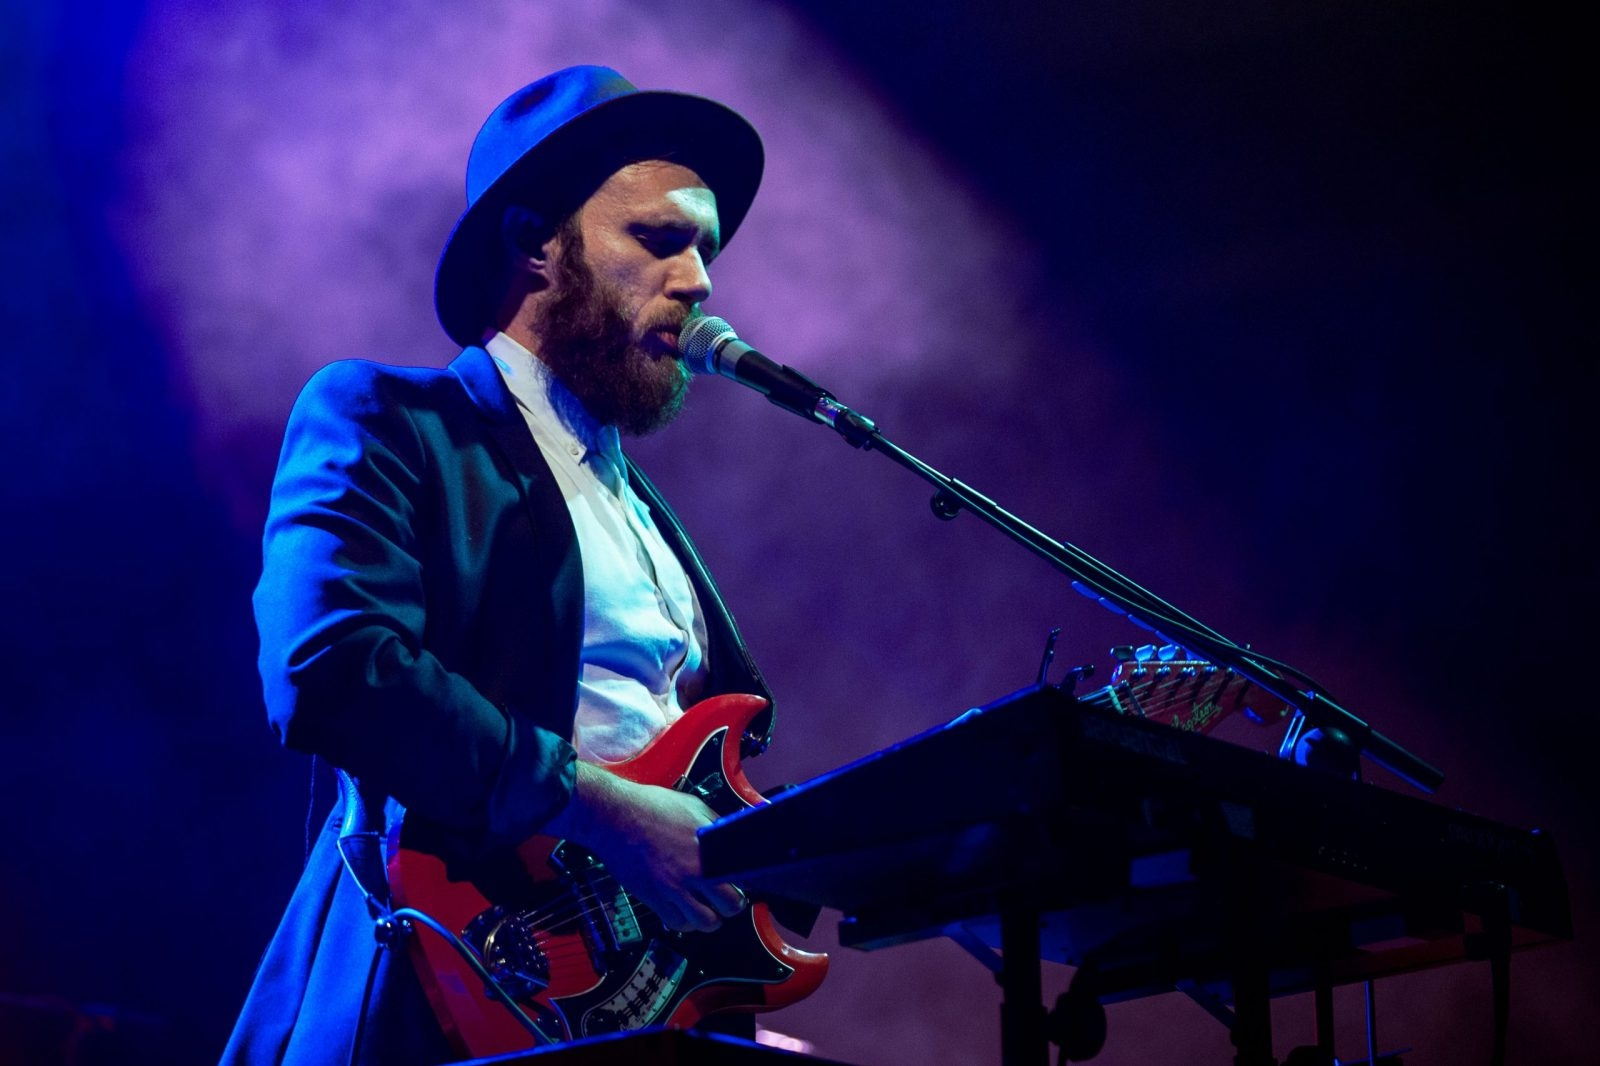 James Vincent McMorrow @ The Ulster Hall 11